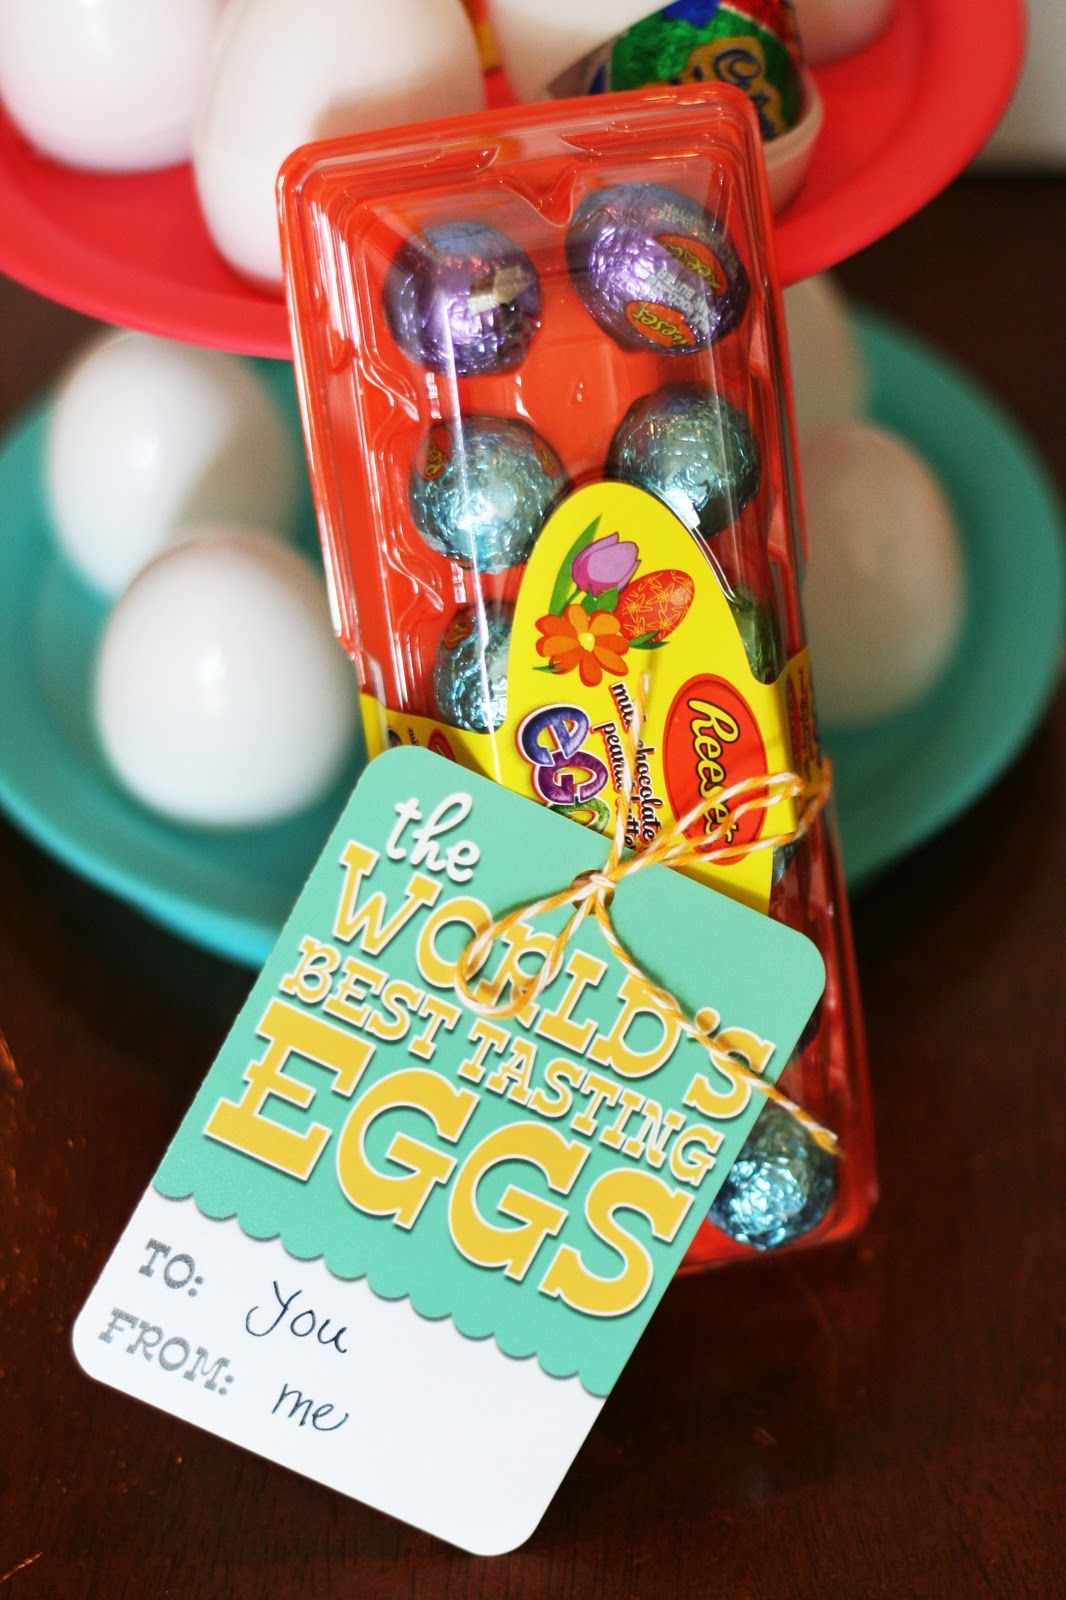 Worlds best tasting eggs easter gift ideas free easter worlds best tasting eggs easter gift ideas free easter printables negle Choice Image